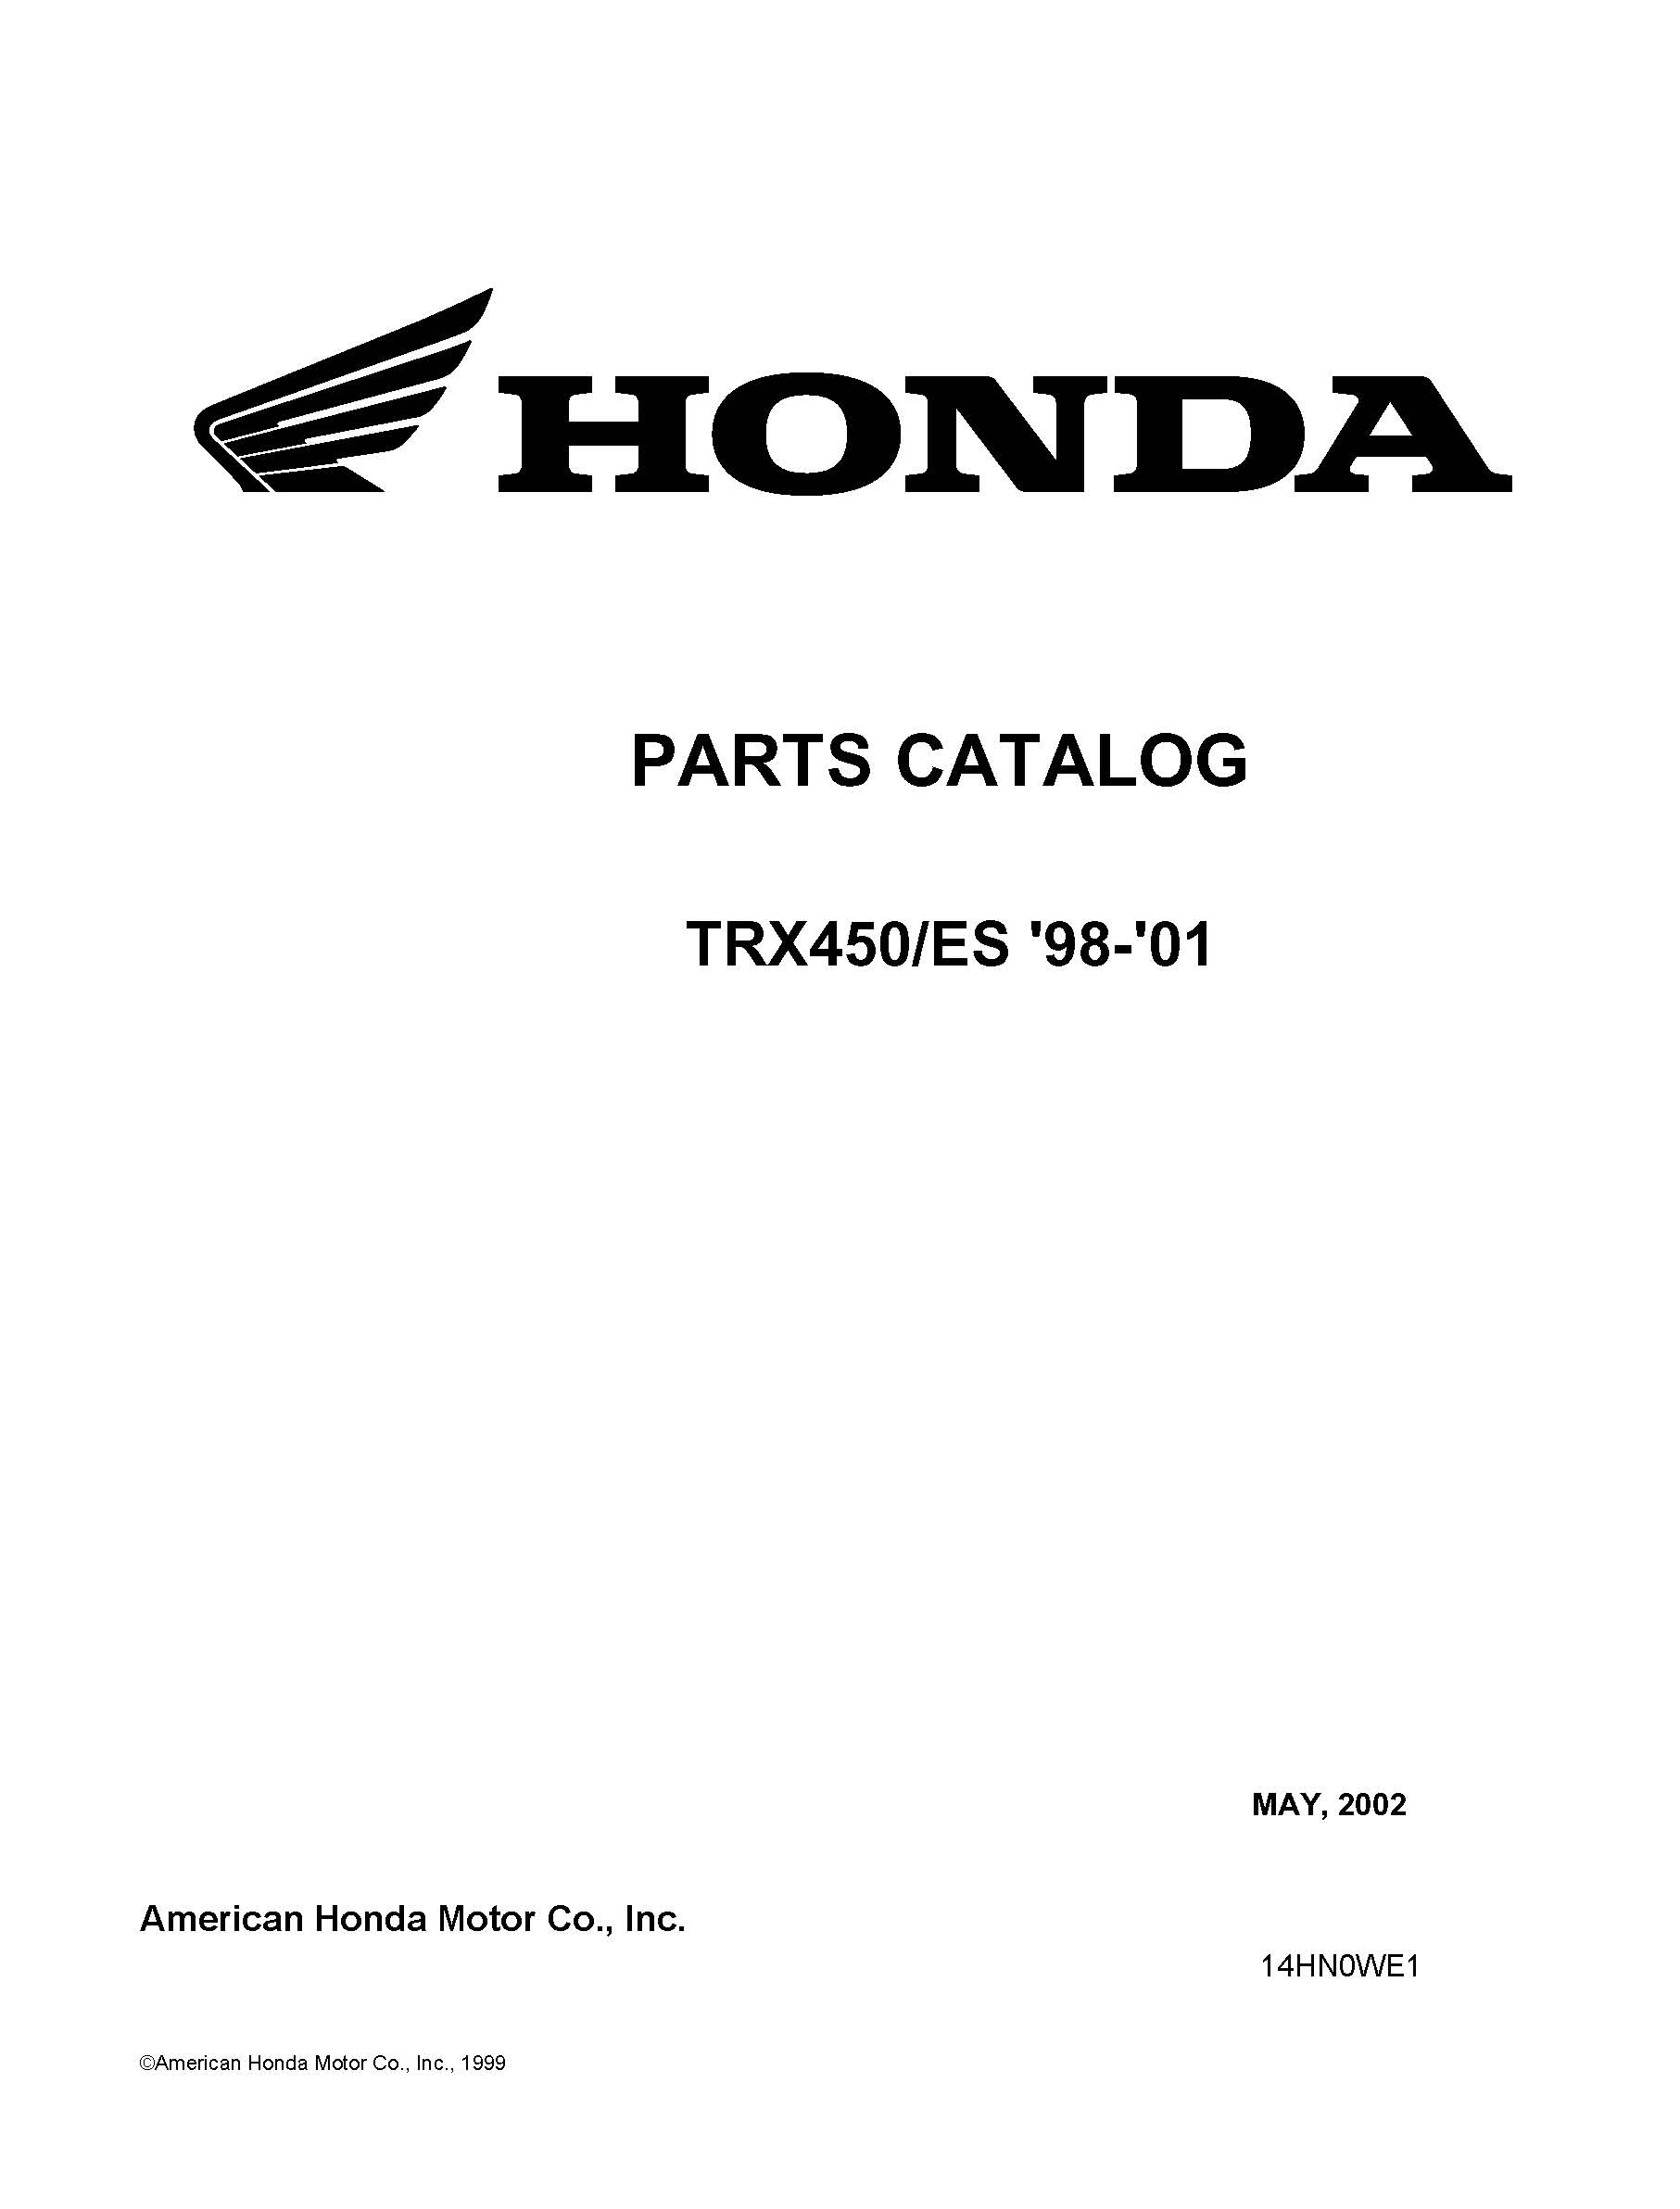 Honda 1998-2001 TRX450S/ES Parts Catalog Service Shop